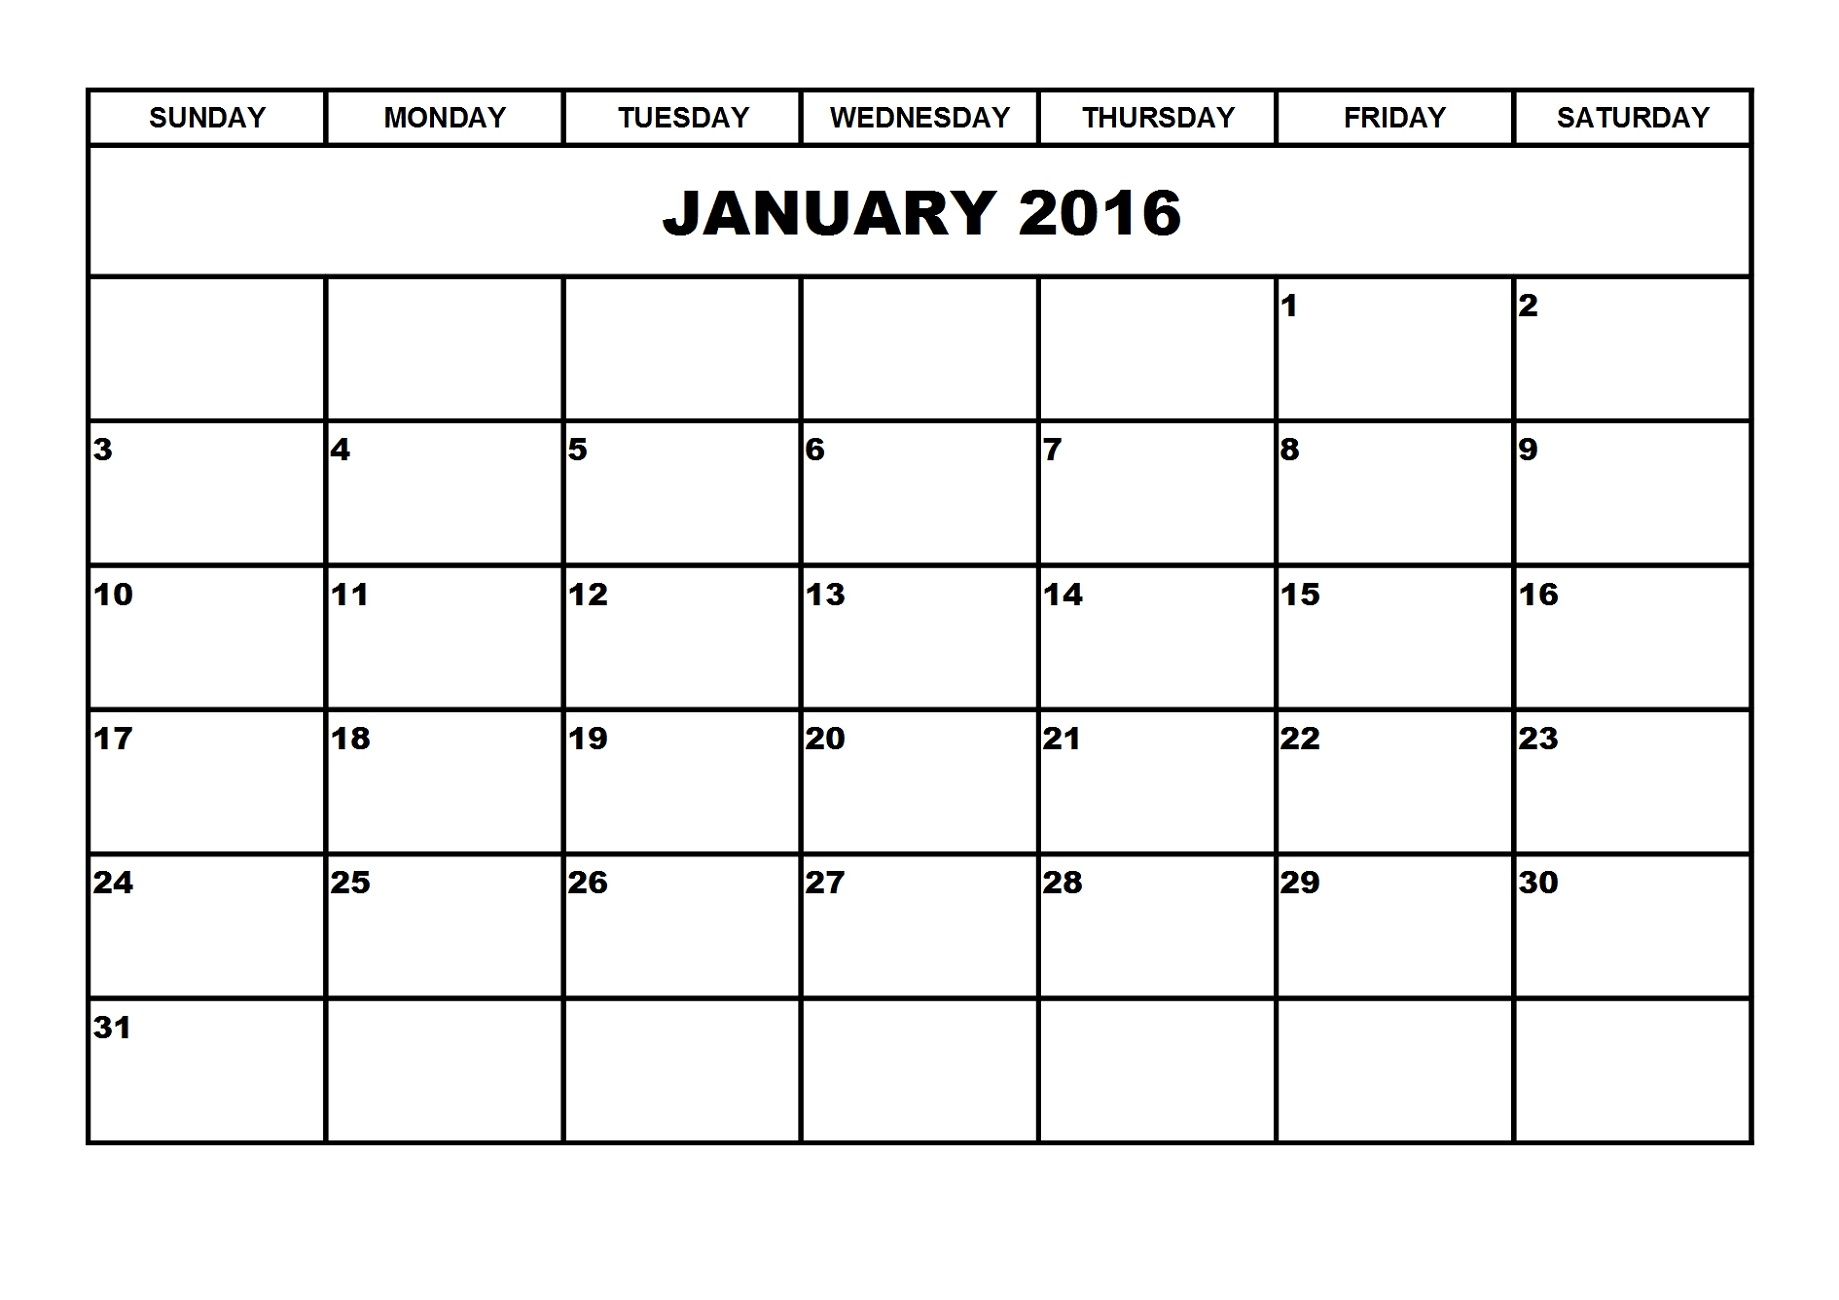 Calendar Monthly Free Print : Delighted free blank calendar template images resume